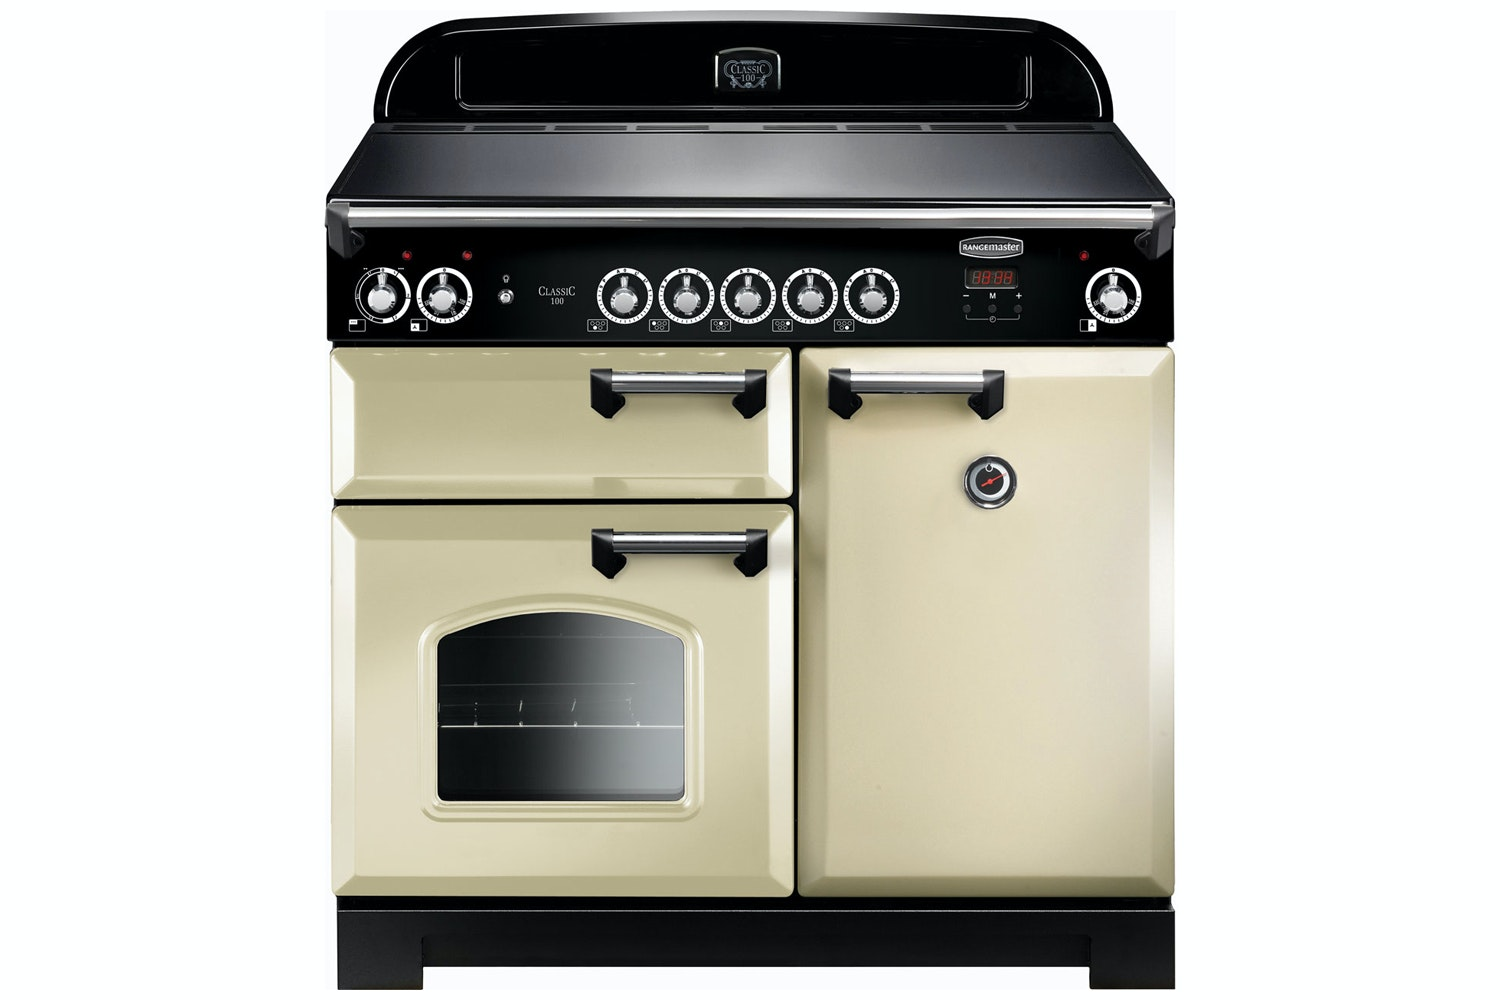 Rangemaster Classic 100cm Induction Range Cooker | CLA100EICR/C | Cream